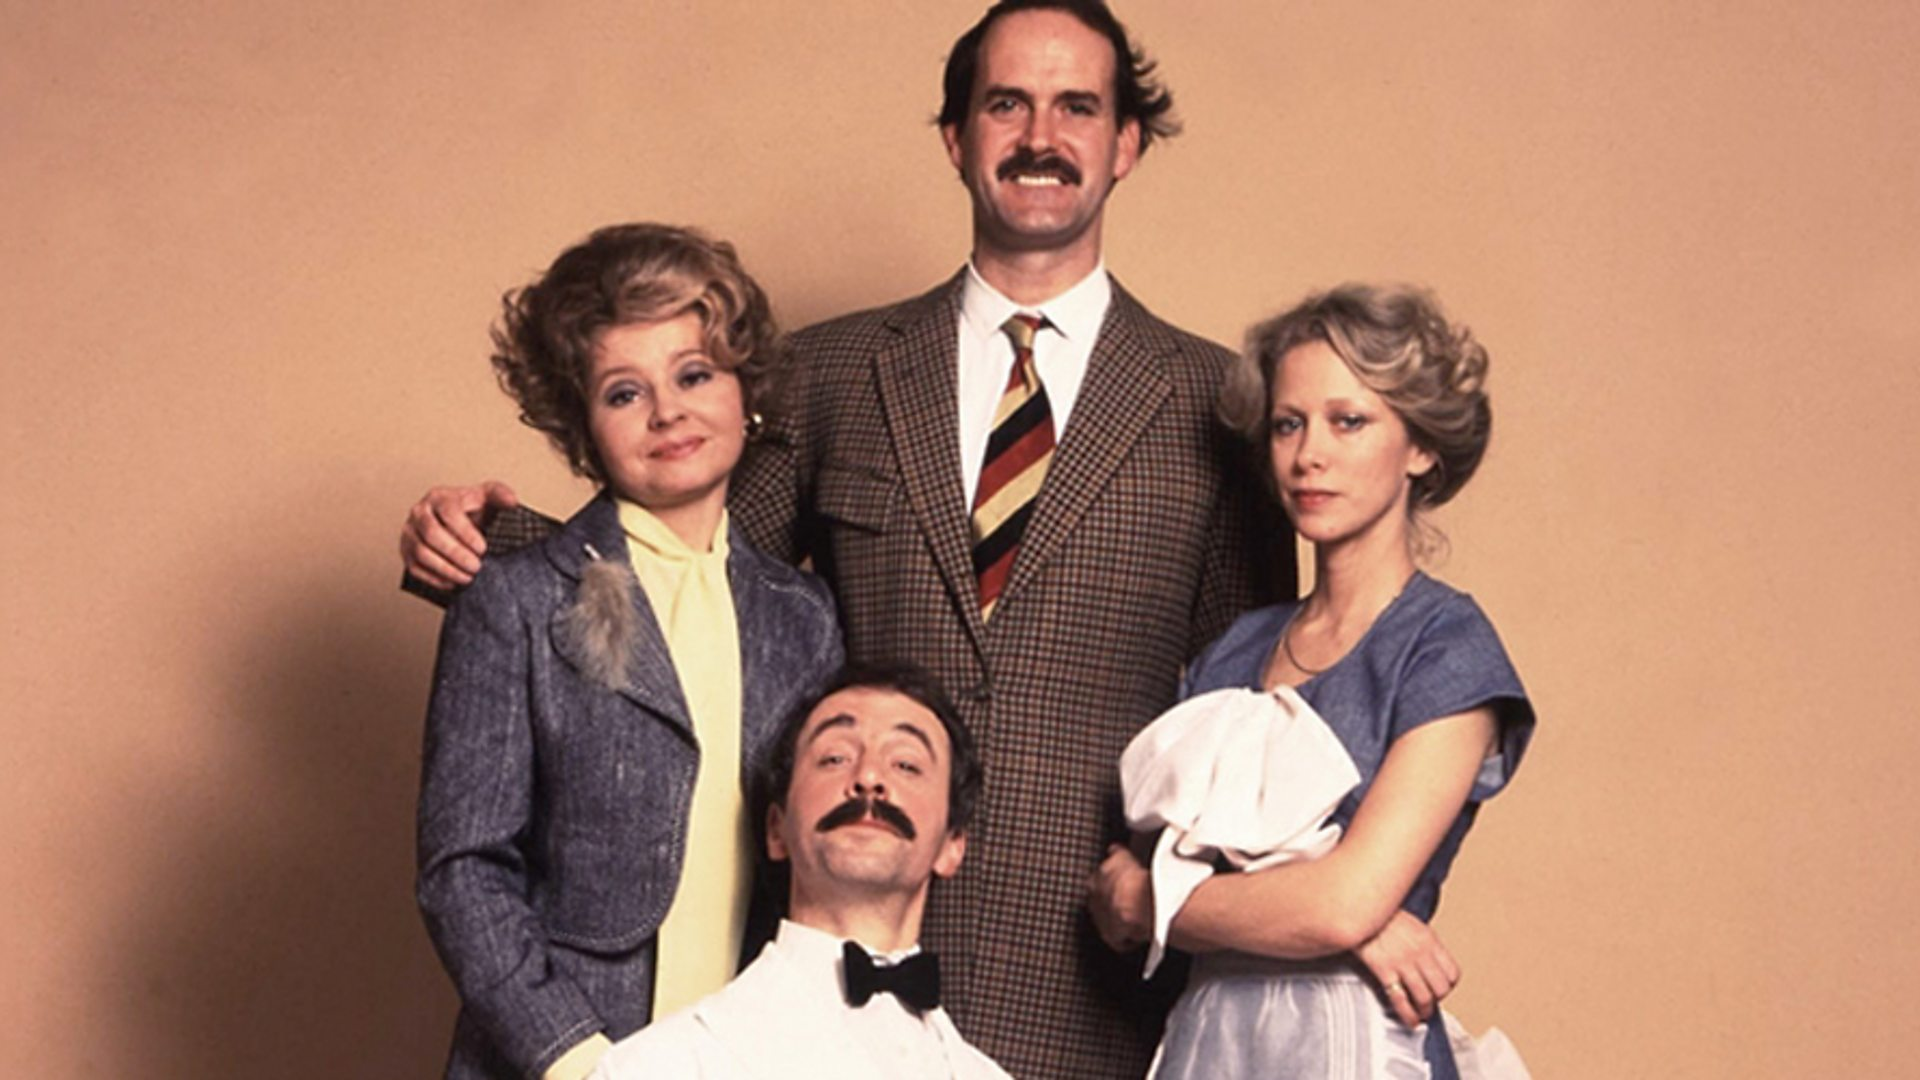 File:Fawlty Towers.jpg